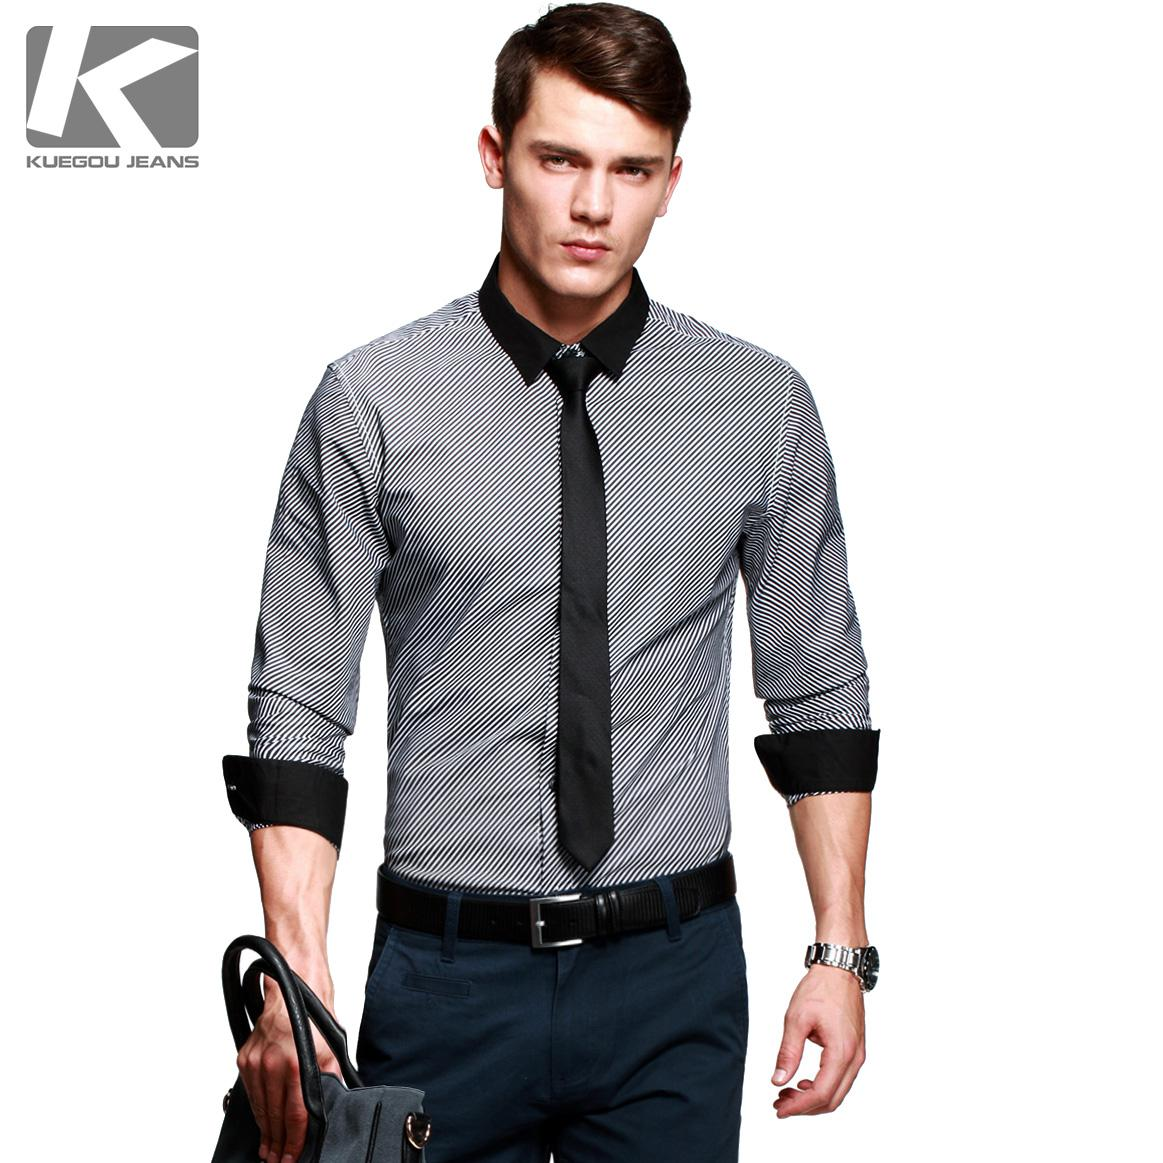 cool-clothing-purchase-business-shirt-men.jpg